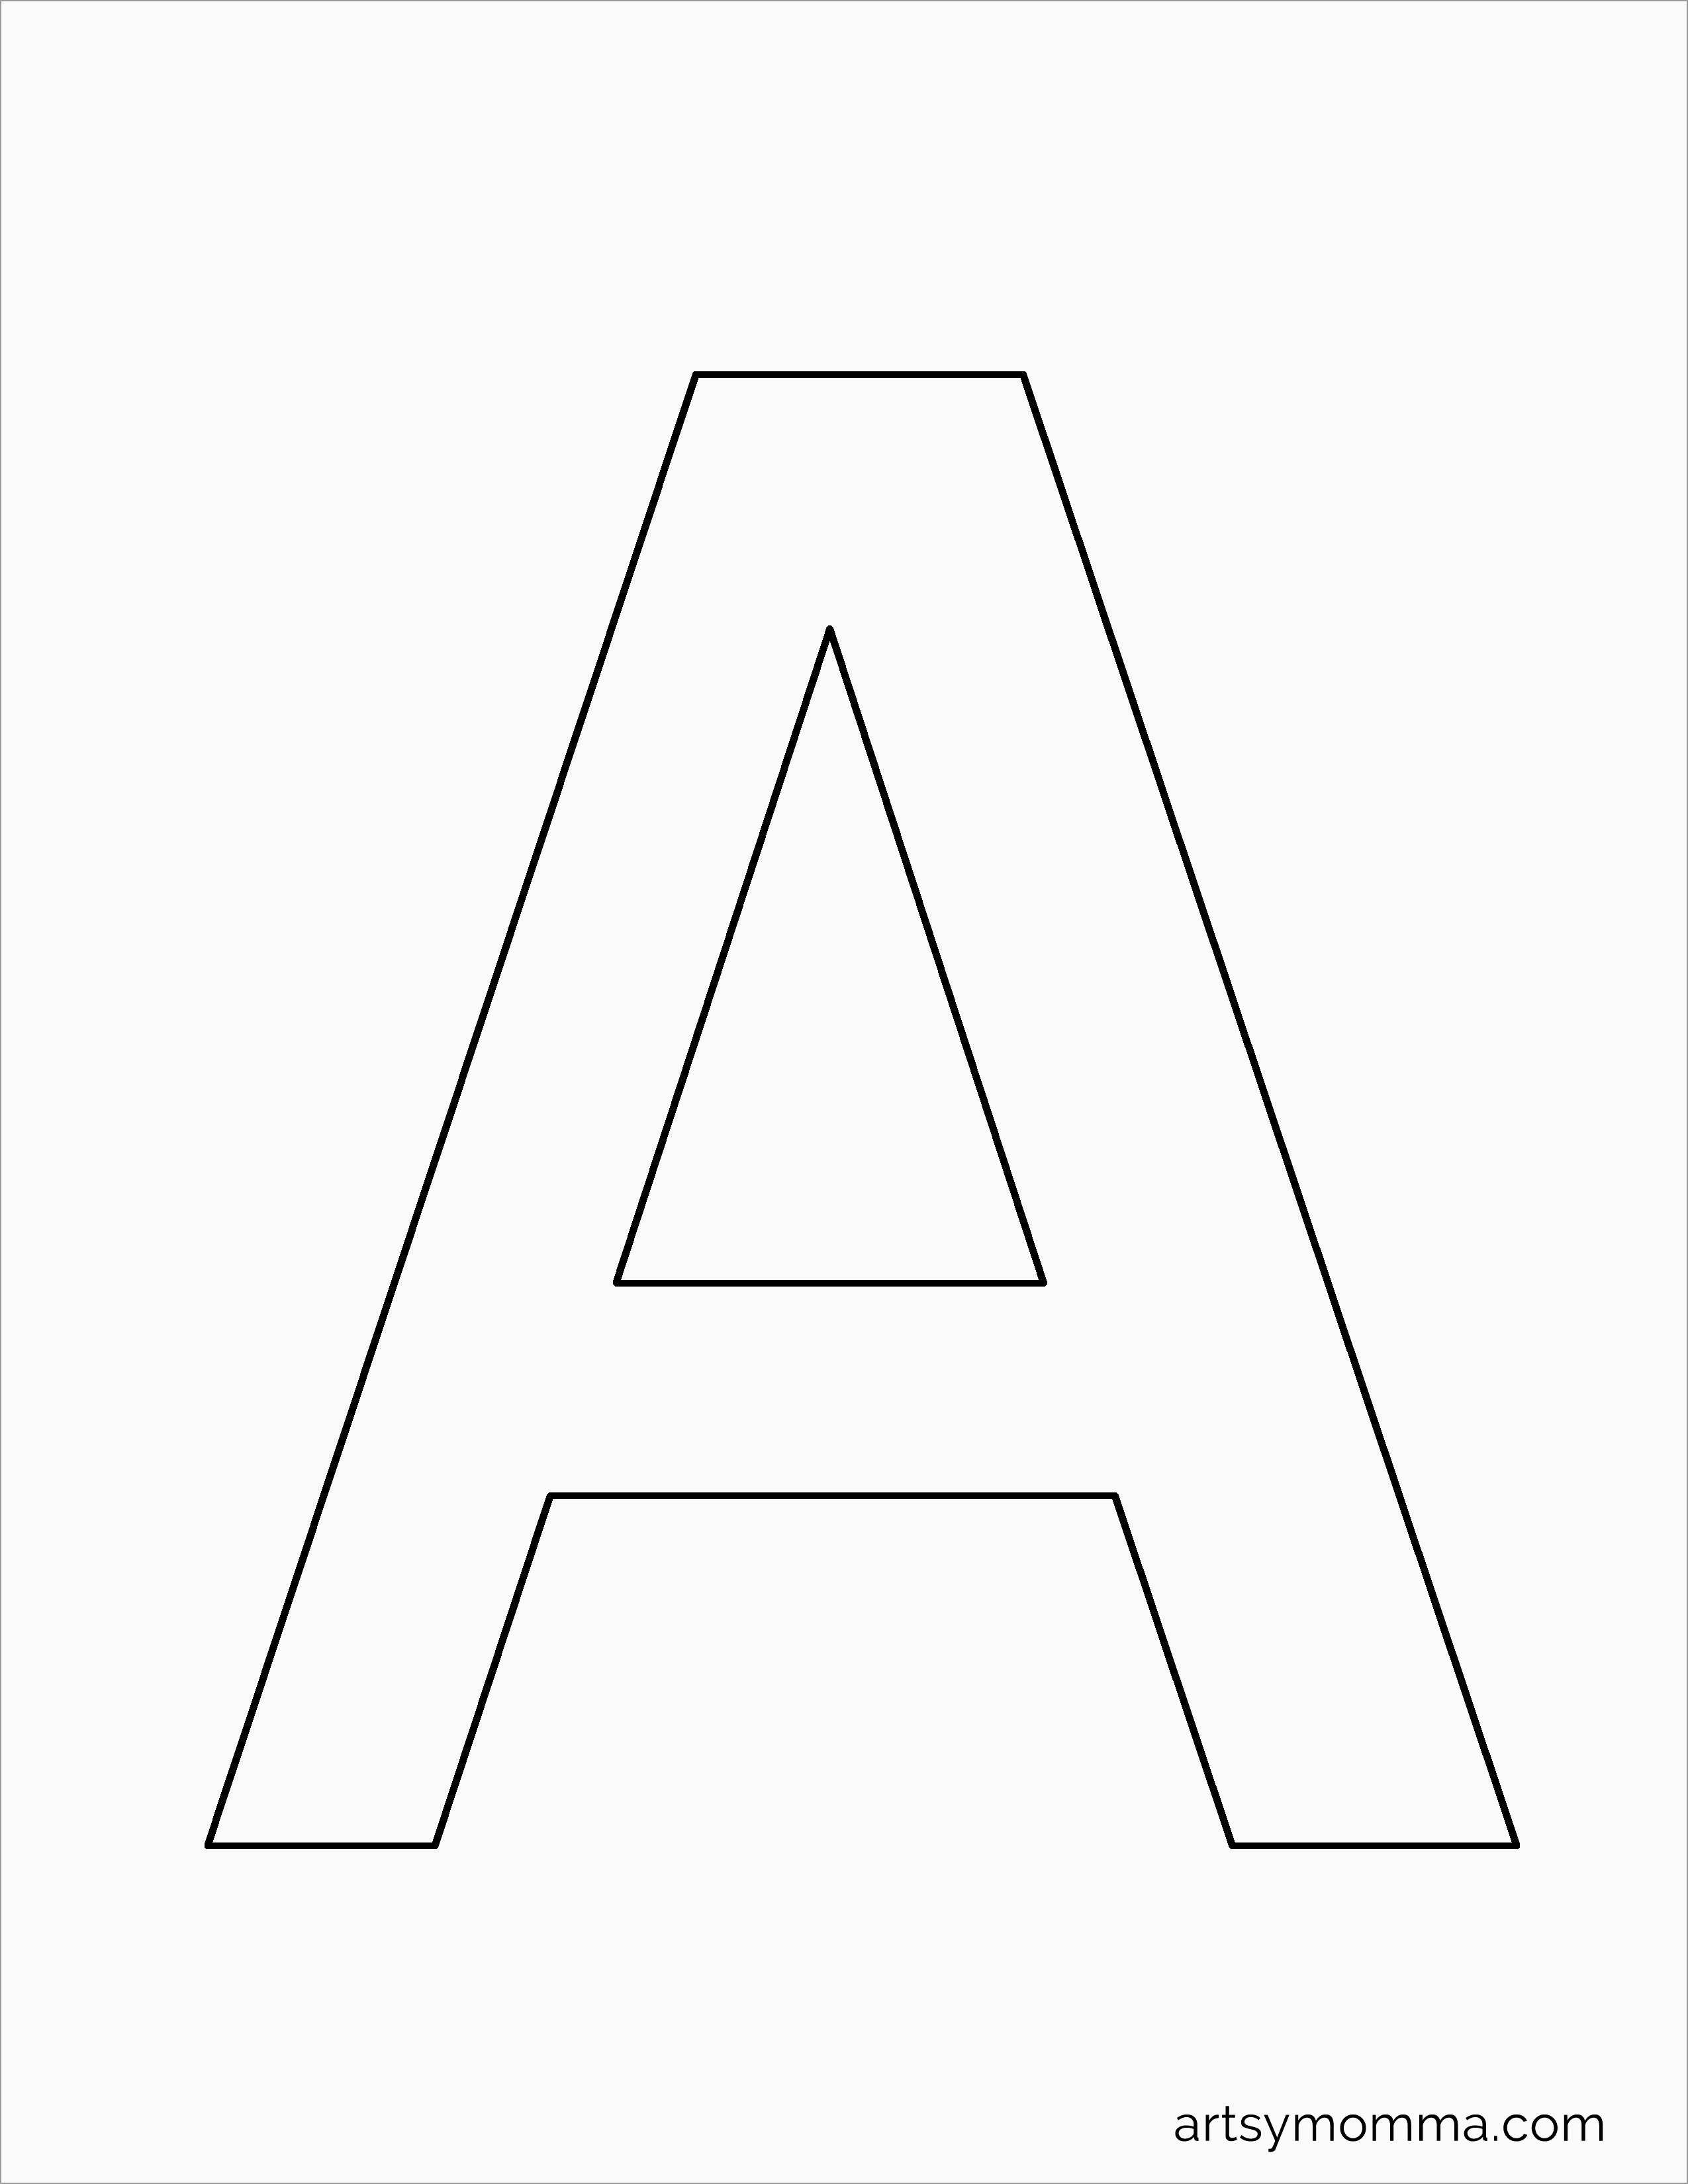 New Free Online Letter Templates   Best Of Template - Free Printable Letter Writing Templates